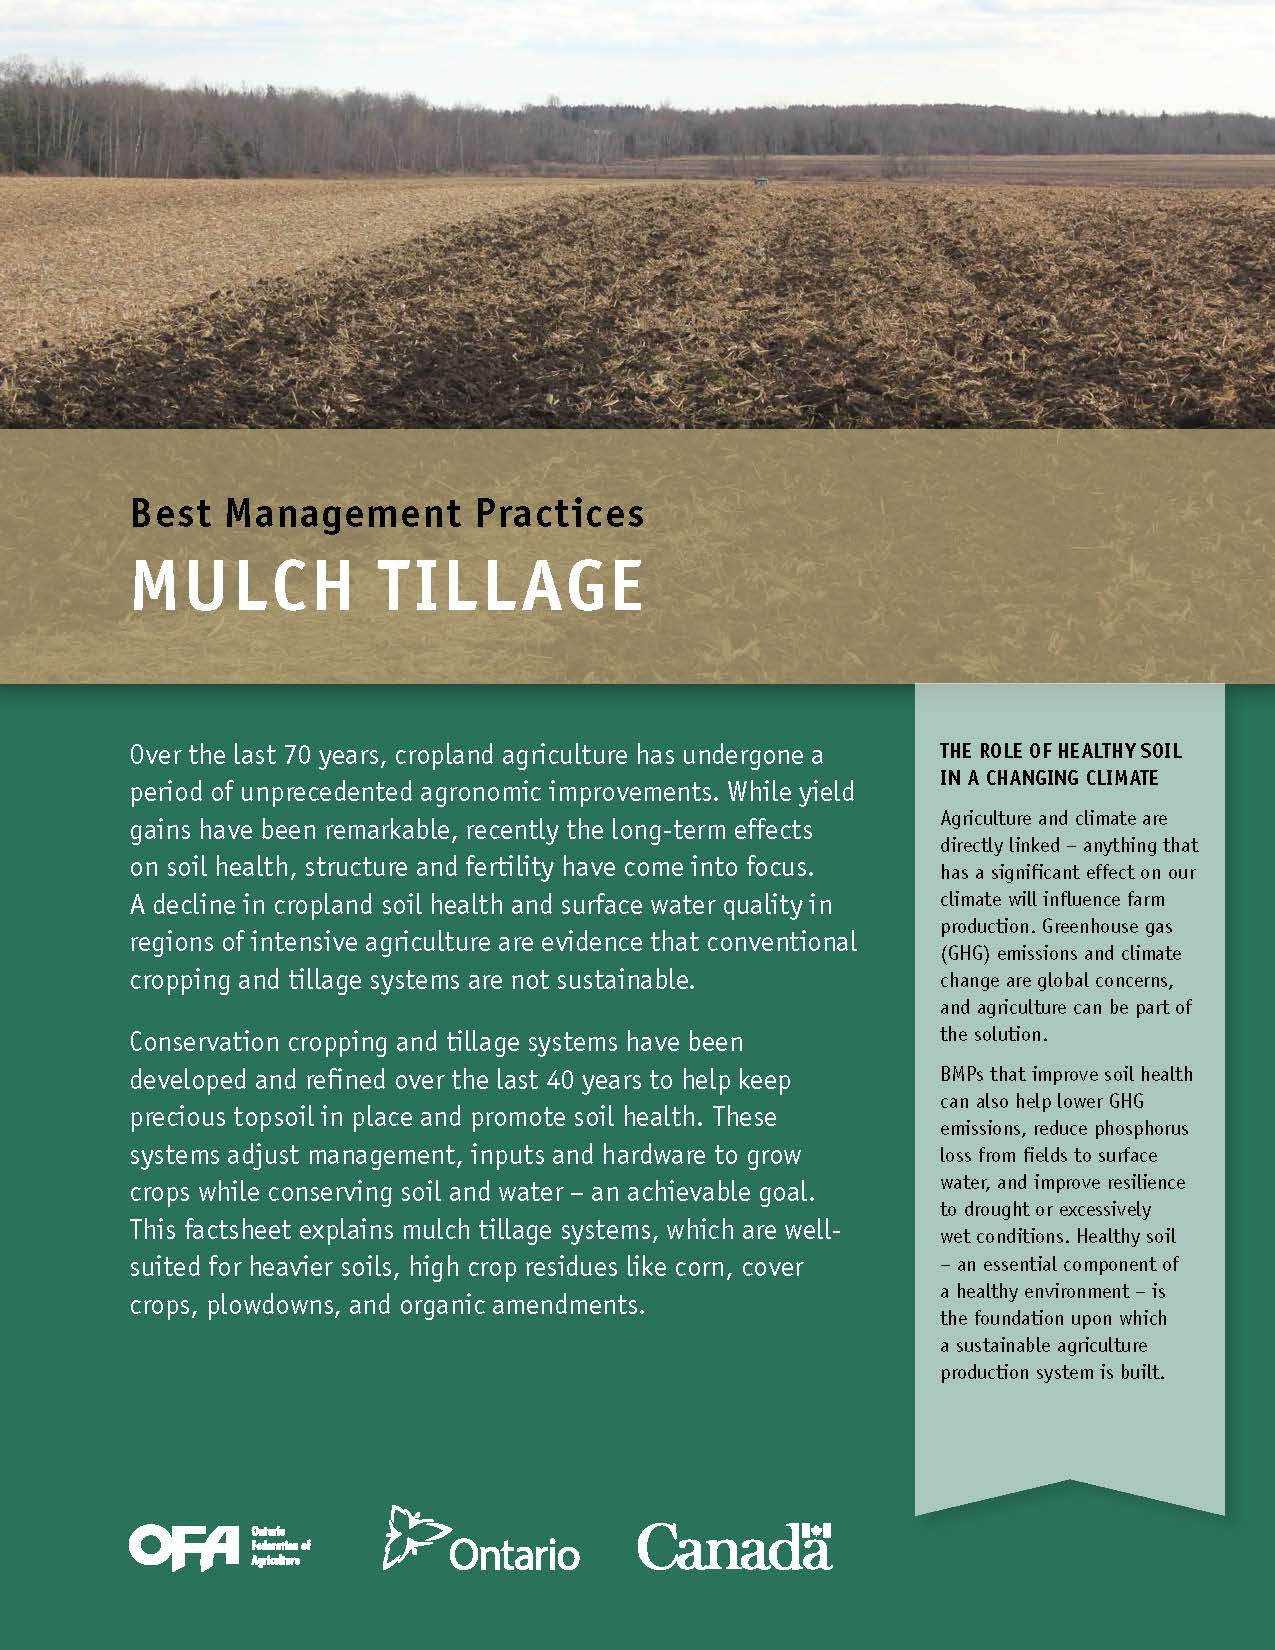 Mulch Tillage